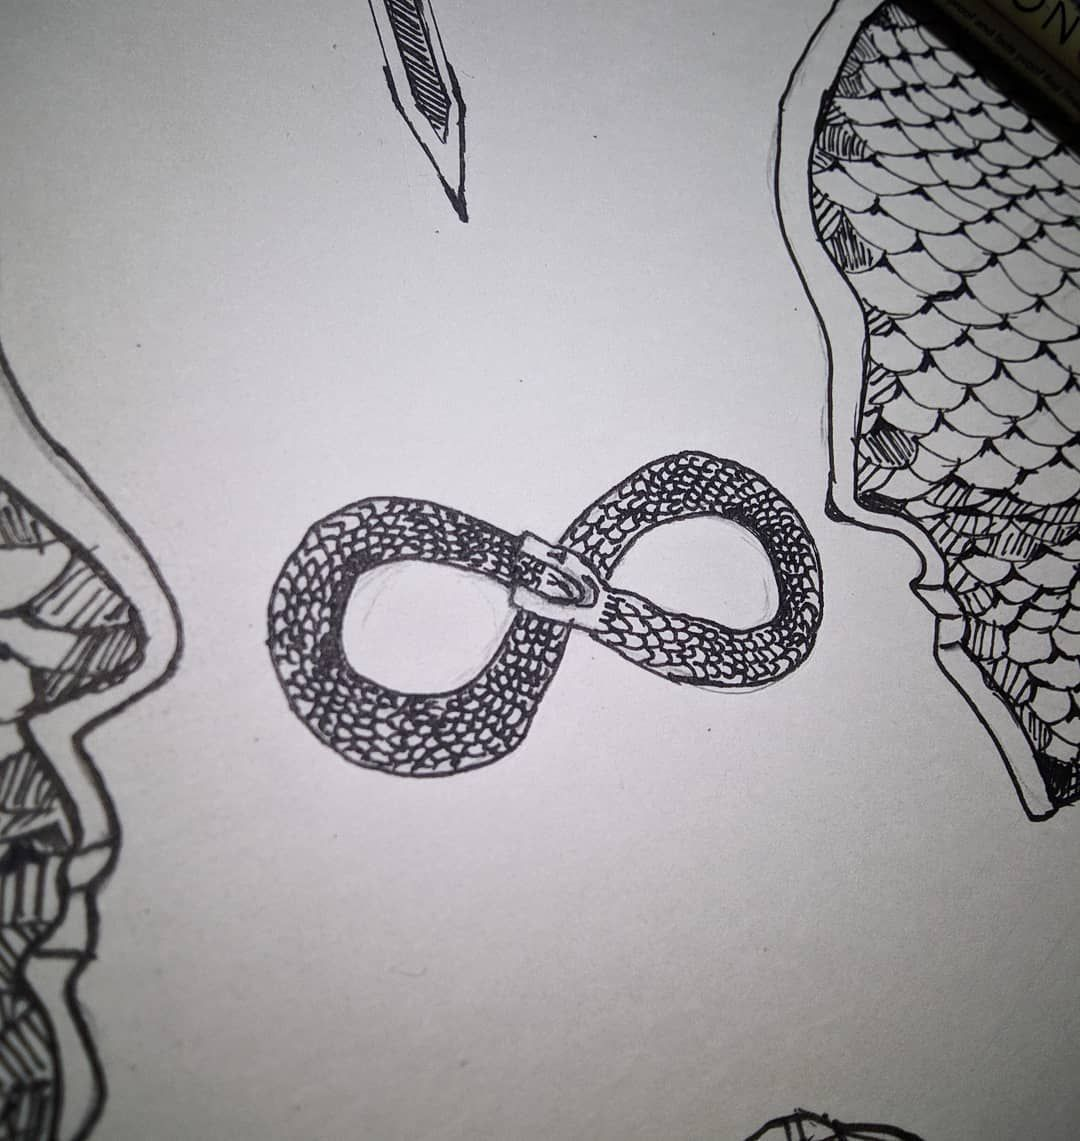 The Ouroboros Symbol [ A Snake eating itself ] in the